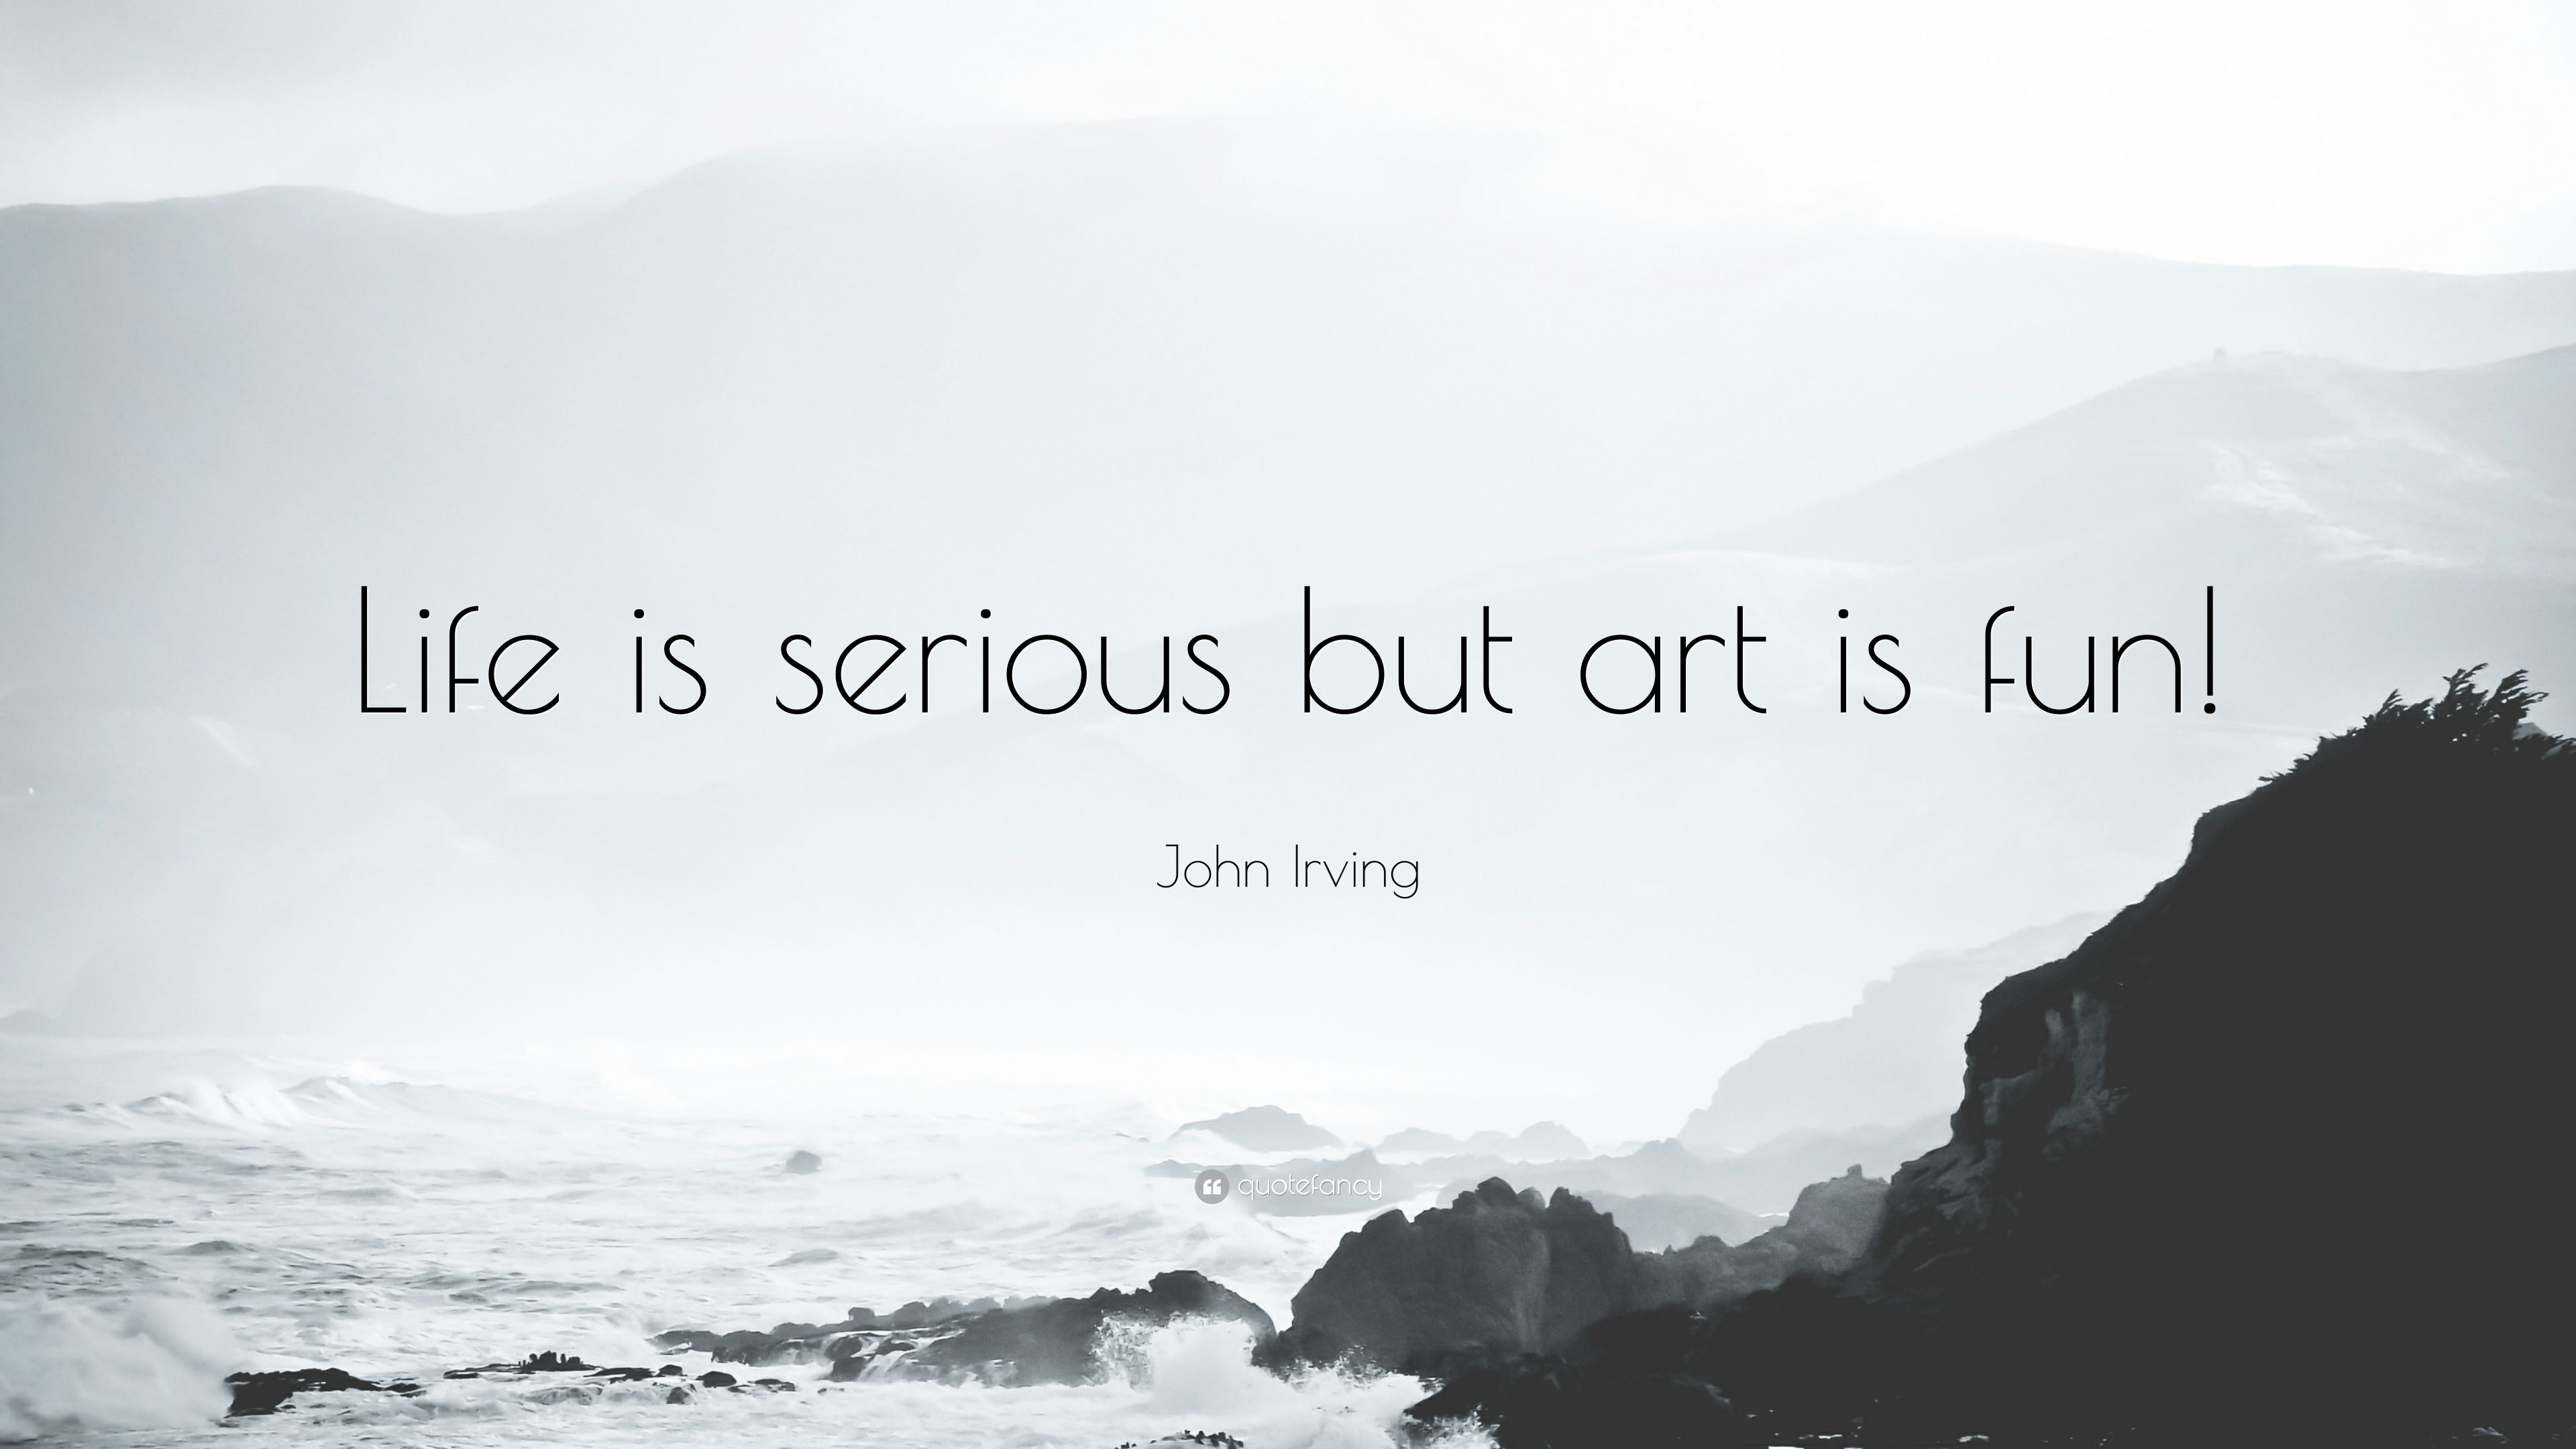 John Irving Quote Life Is Serious But Art Is Fun 6 Wallpapers